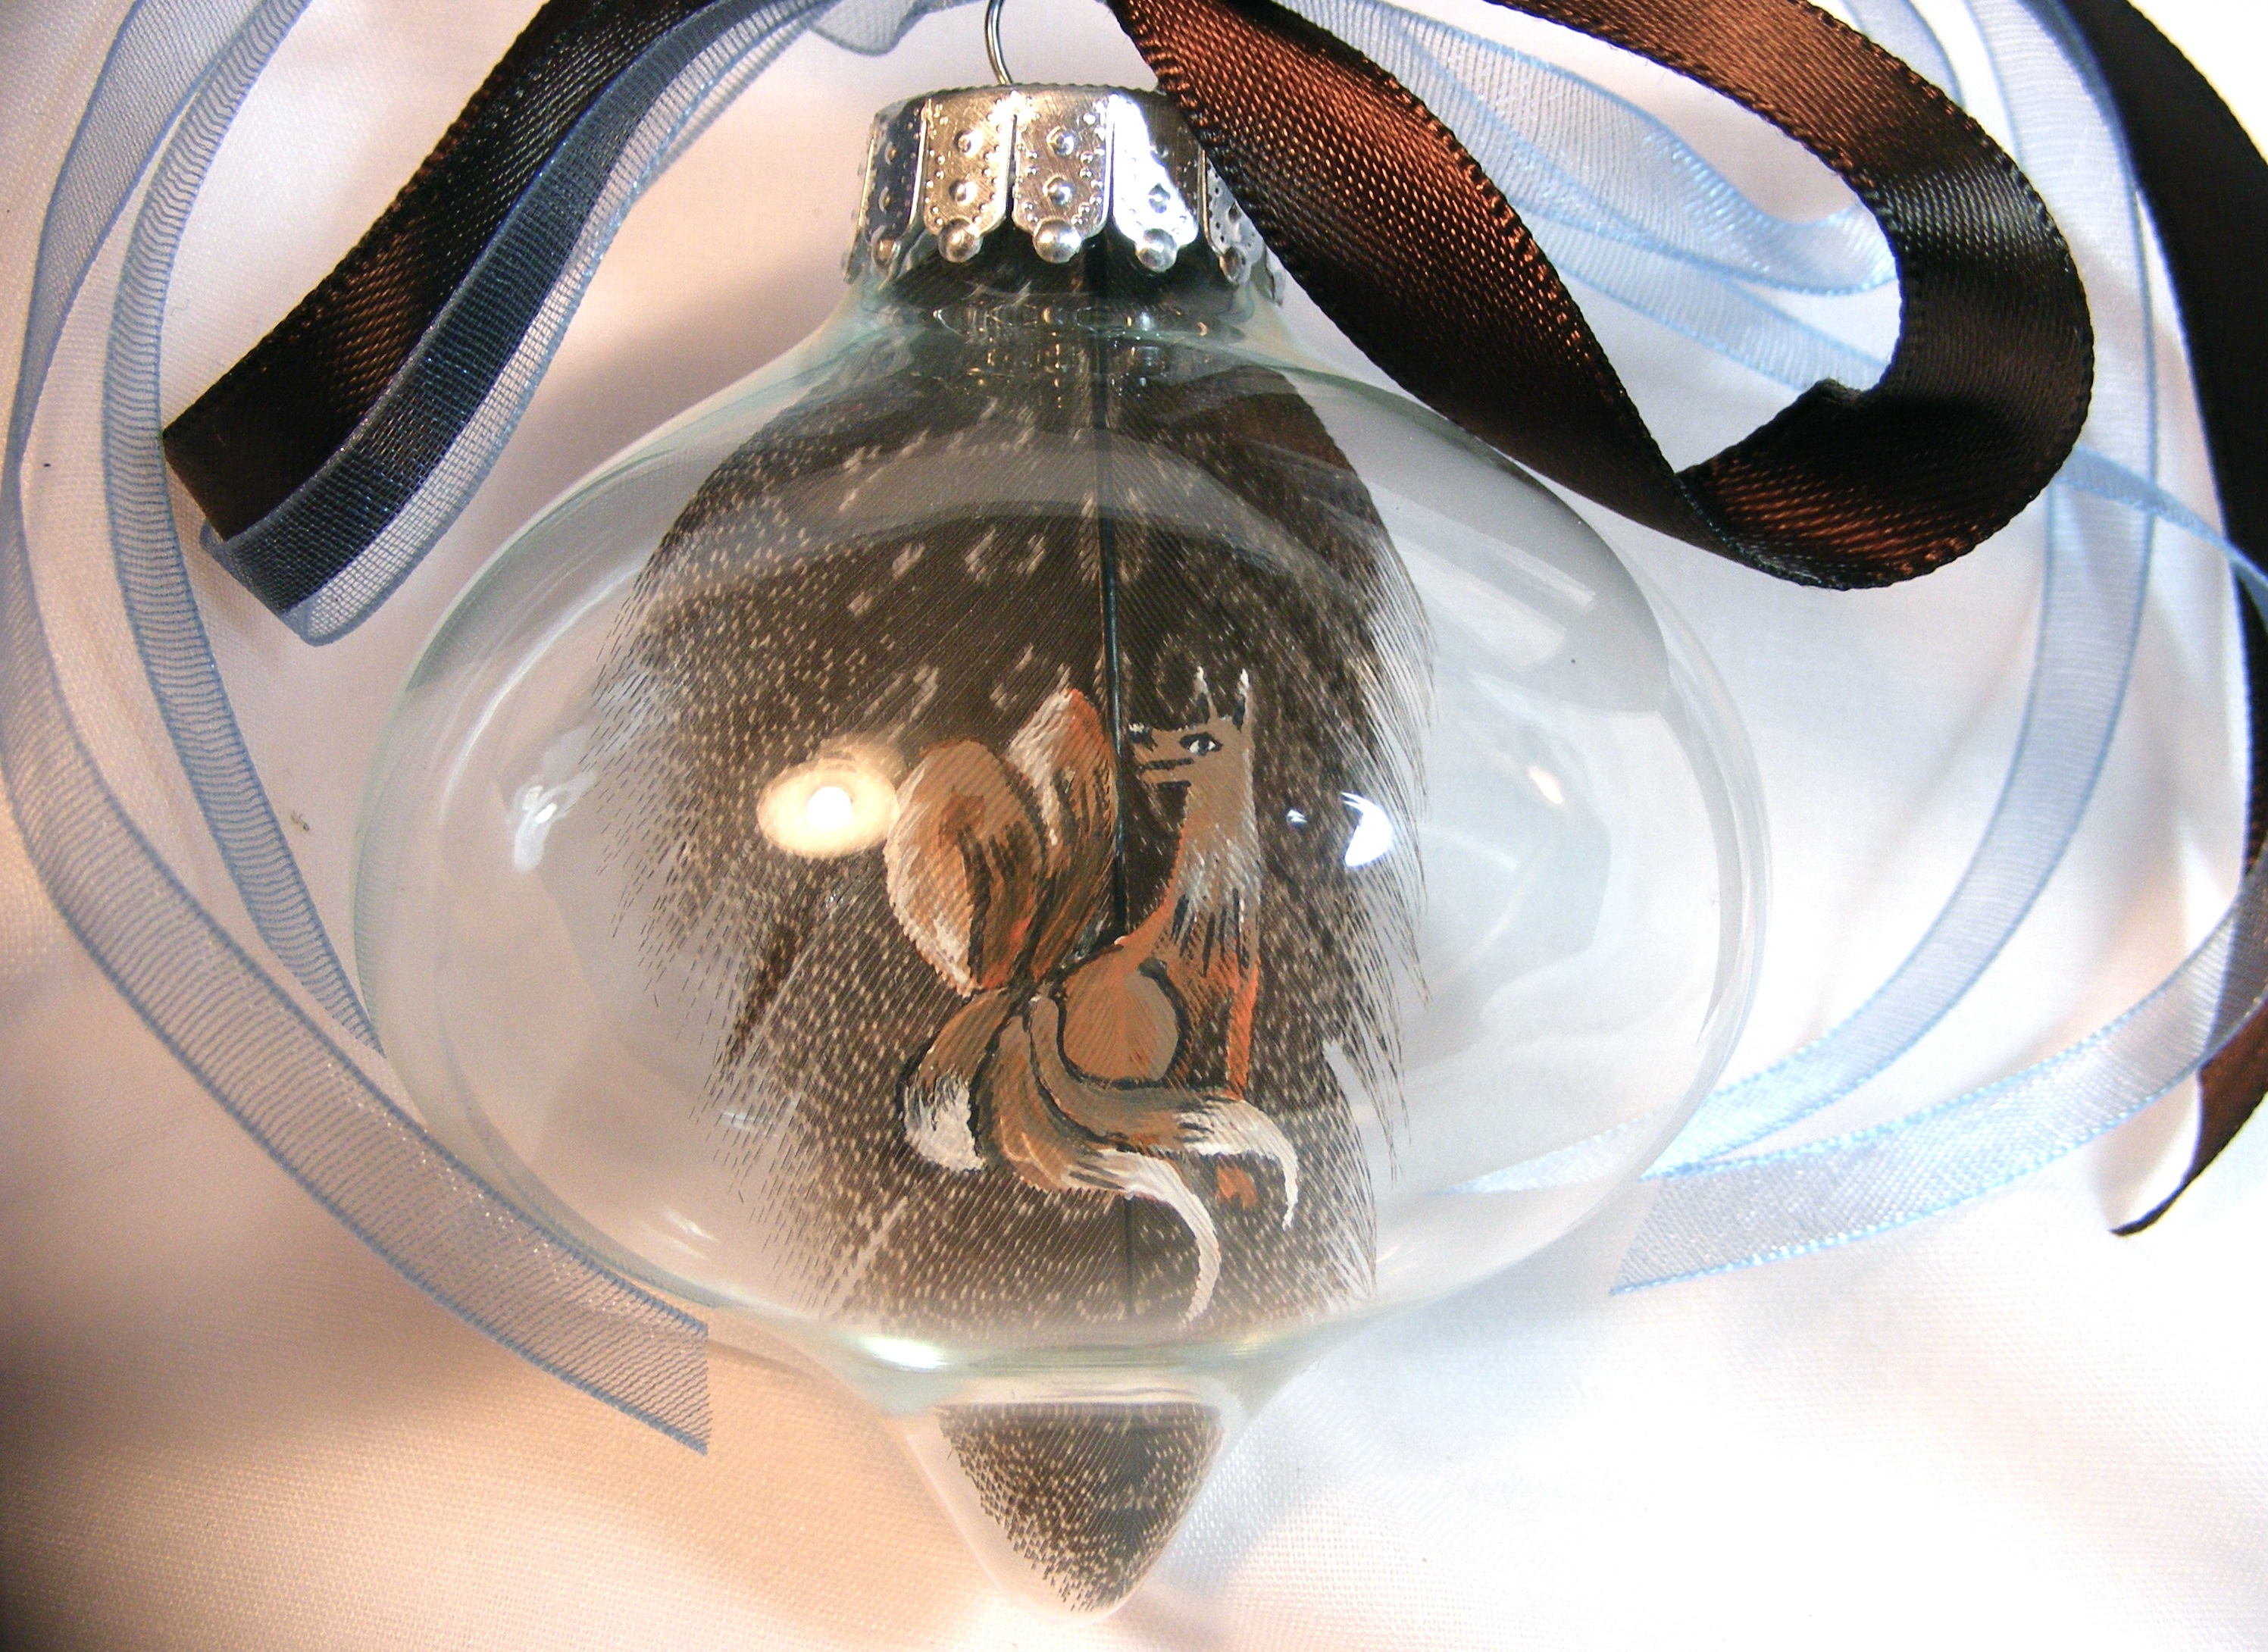 Gobi no Kitsune. Acrylic on guineafowl feather in glass ornament with ribbon.